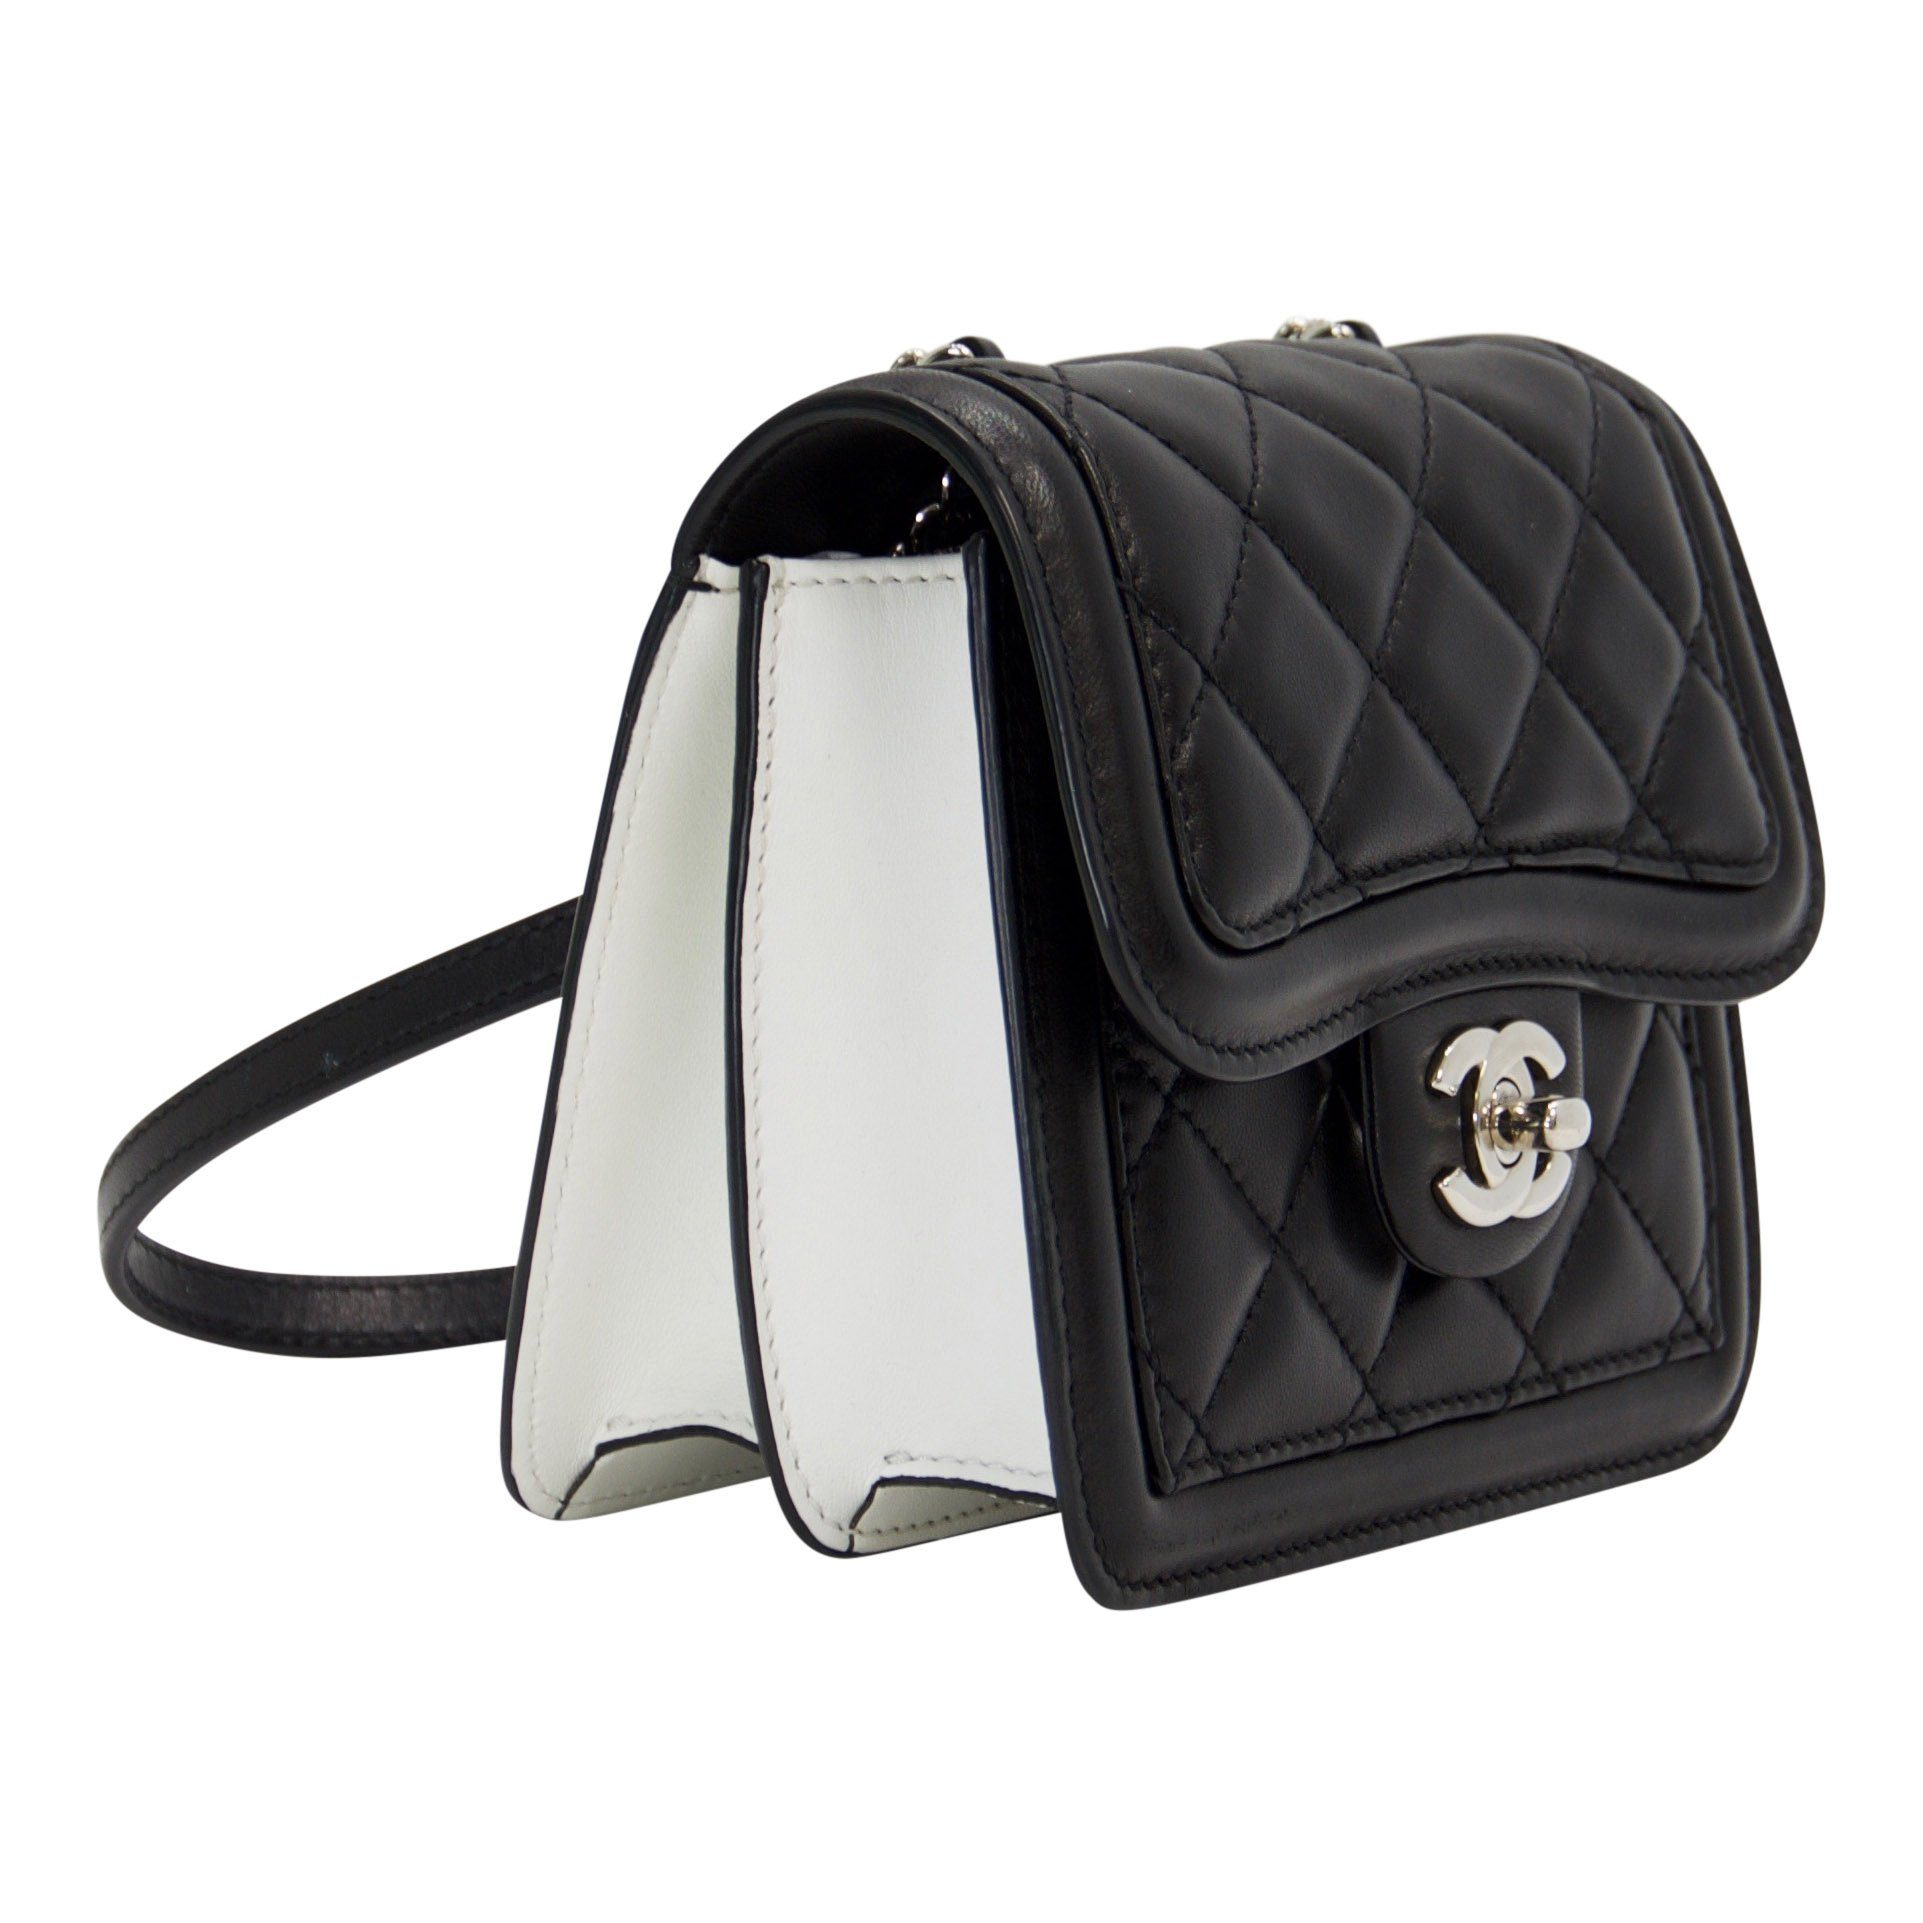 cdd929d2112006 ... Chanel Graphic Accordion Mini Flap Bag Bags Chanel ...